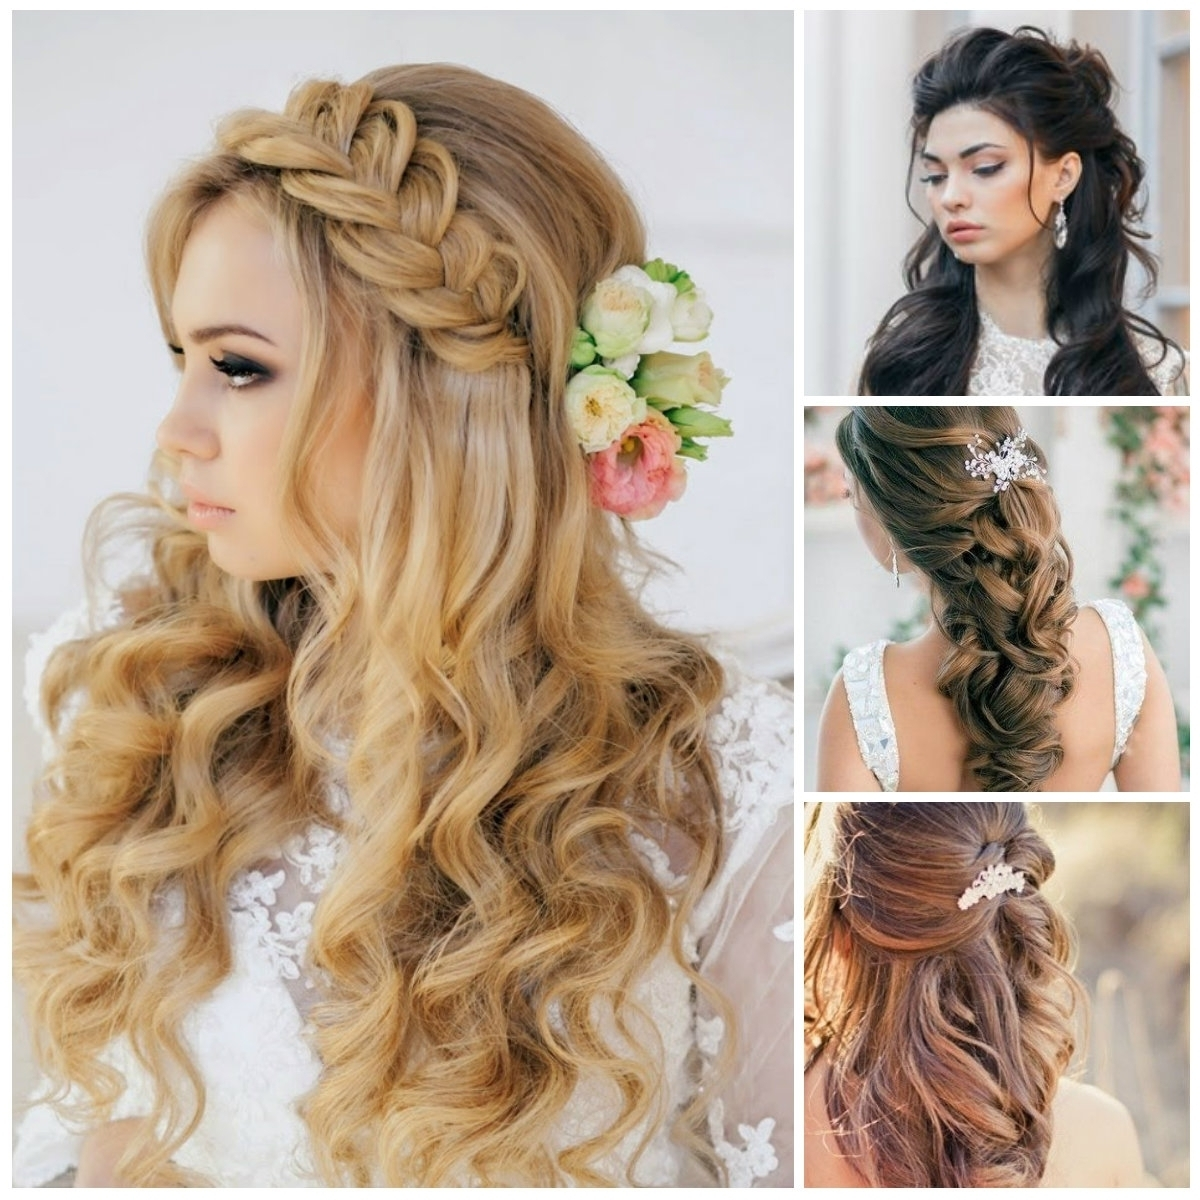 Favorite Wedding Hairstyles For Shoulder Length Curly Hair Intended For Stunning Wedding Hairstyles For Medium Length Ideas Bridal Shoulder (View 14 of 15)